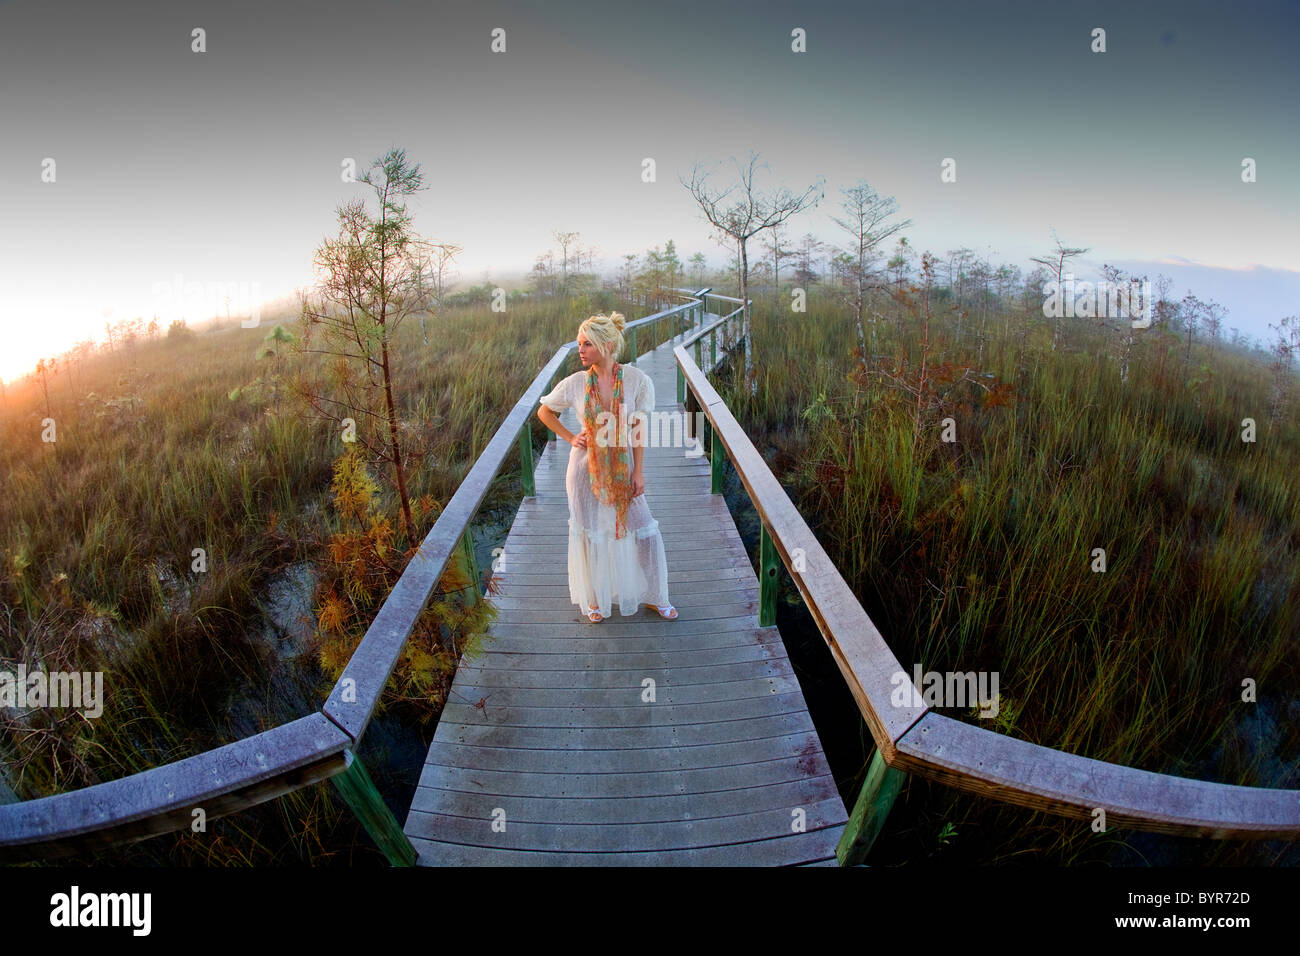 Young woman in fashionable dress standing on wooden walkway in nature - Stock Image